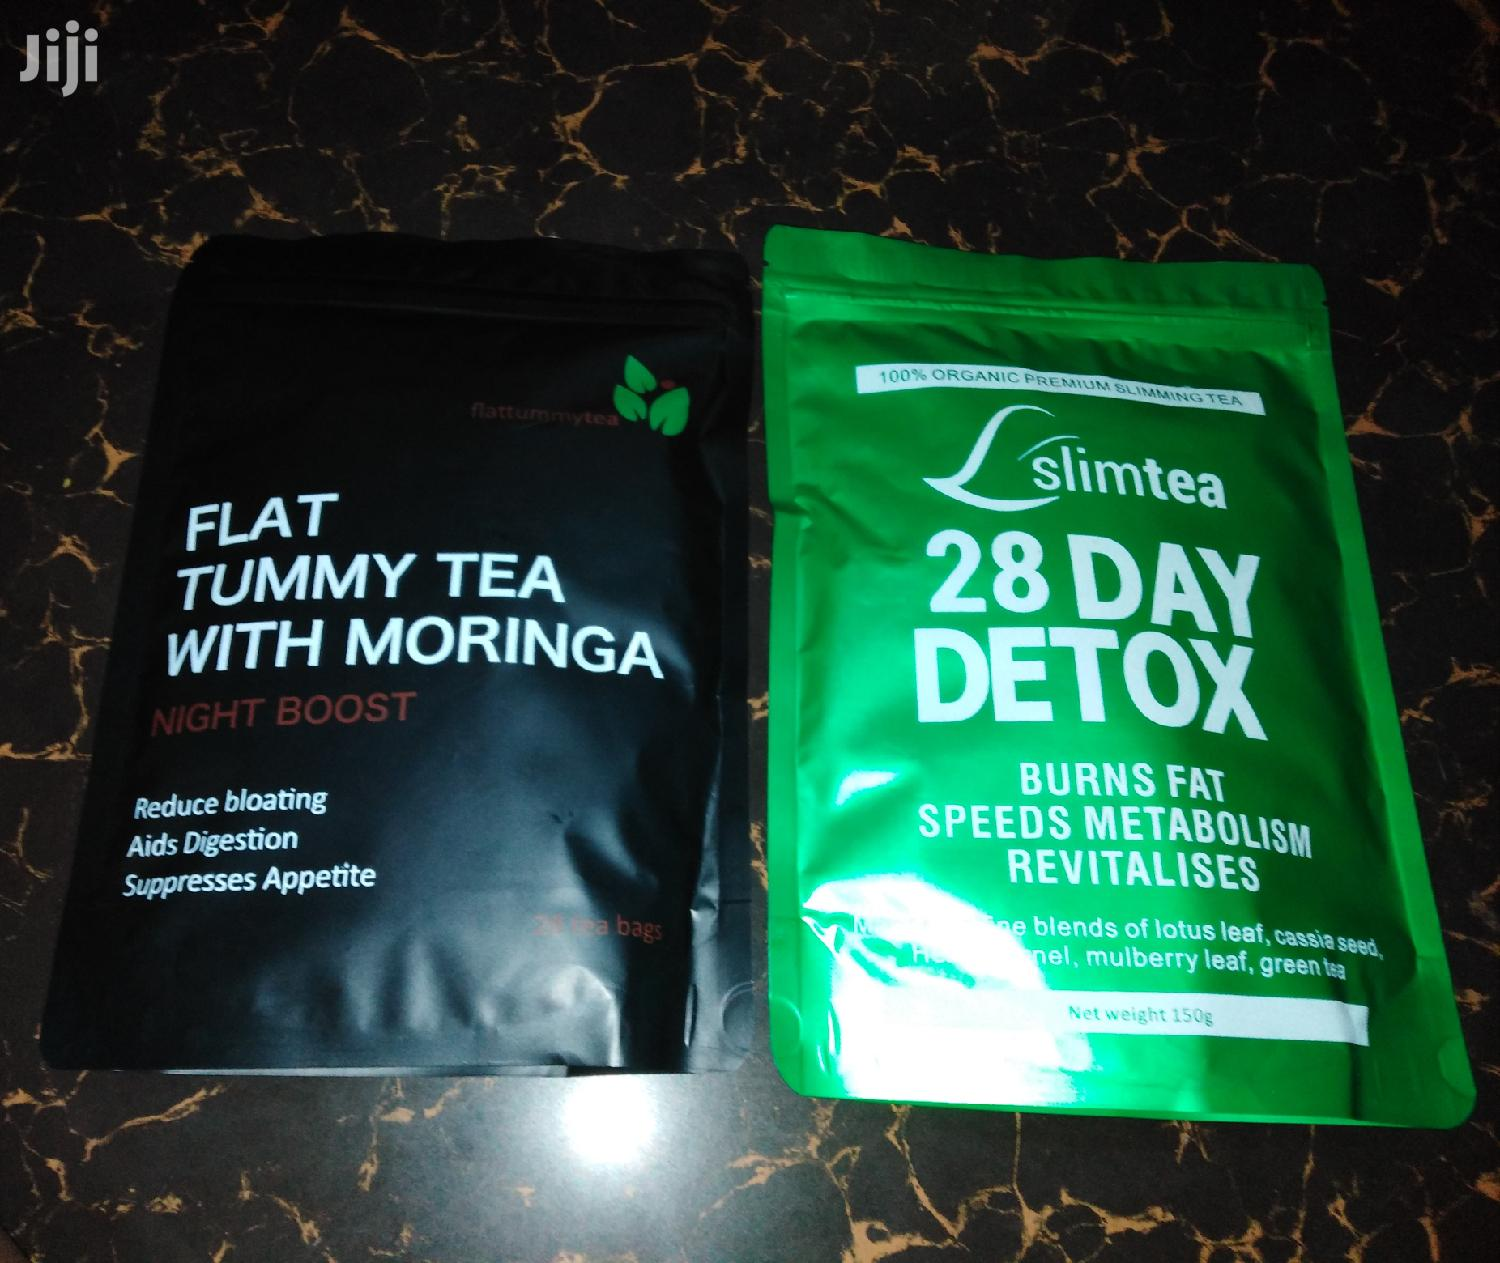 Slim and Flat Tummy Tea